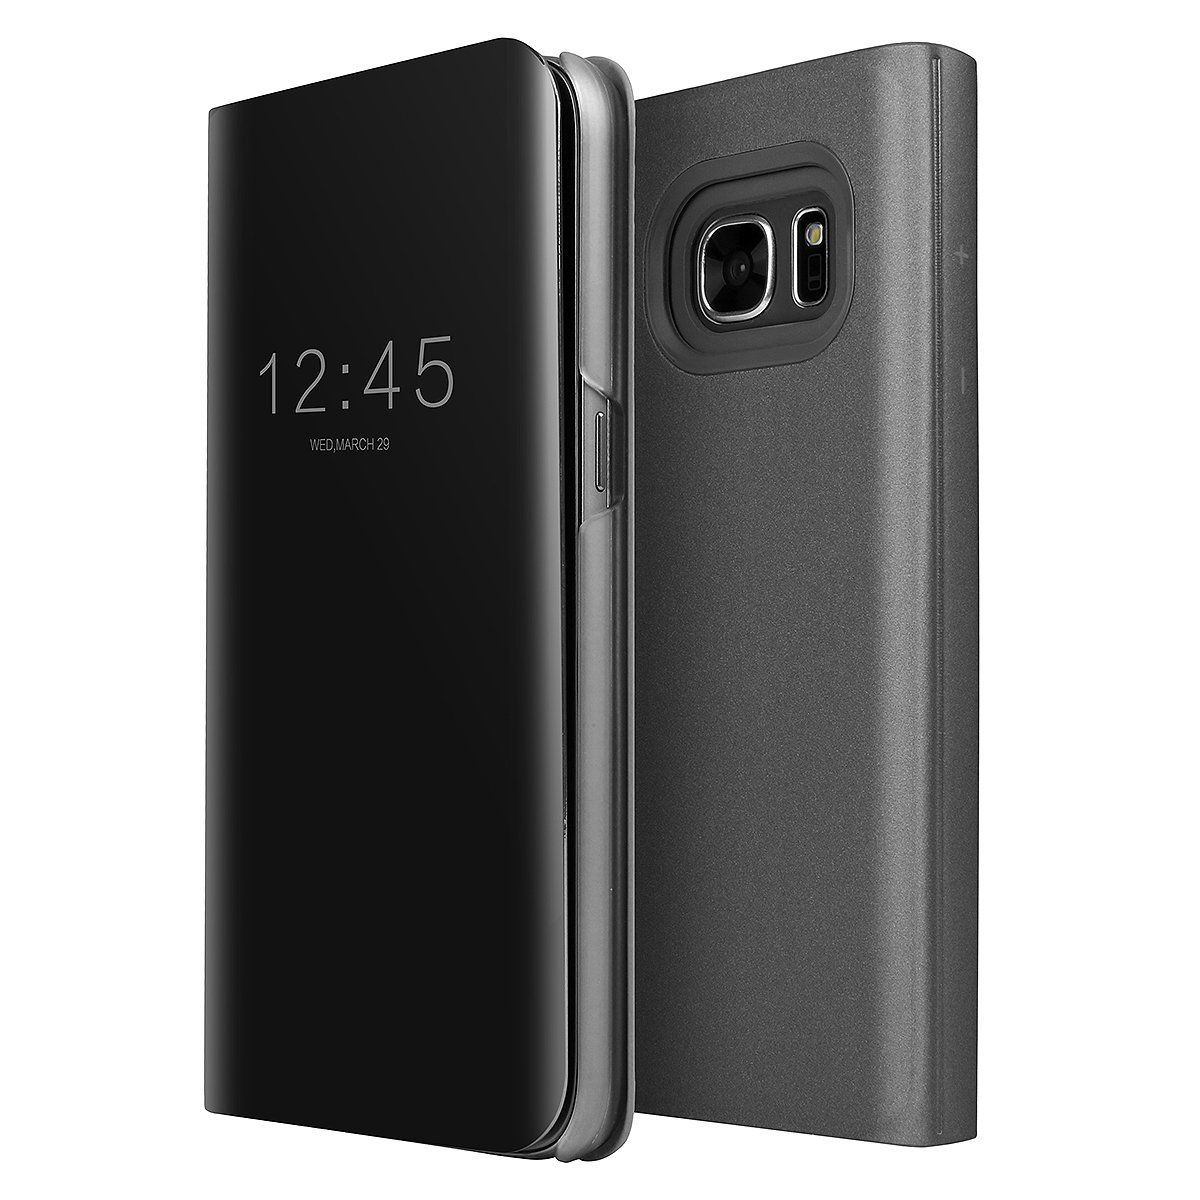 buy online 53a32 e52d6 Galaxy S7 Edge Case, AICase Luxury Translucent View Window Sleep/Wake Up  Function Cover Mirror Screen Flip Electroplate Plating Stand Full Body ...